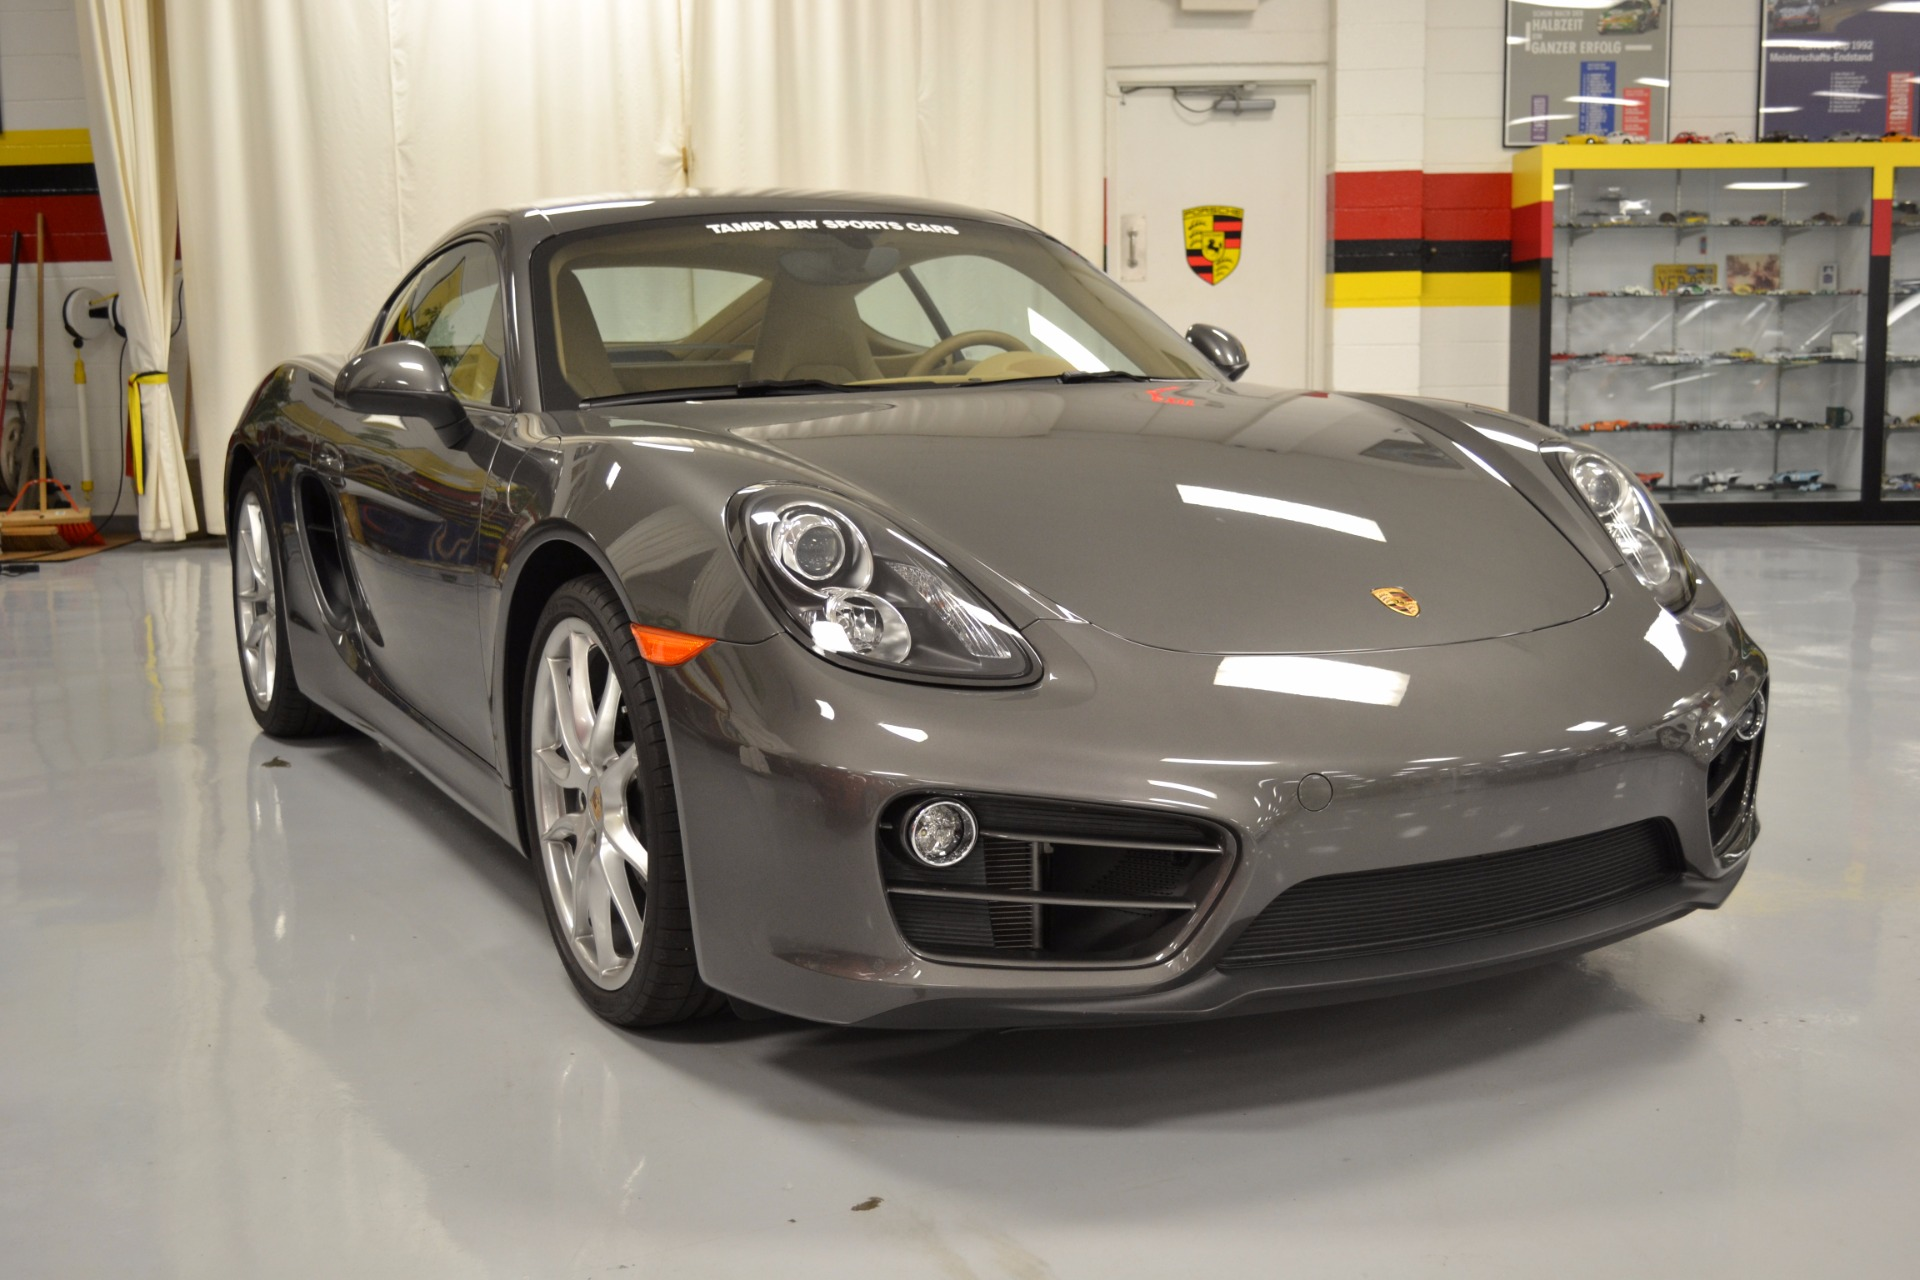 2014 porsche cayman for sale in pinellas park fl 1198 tampa bay sports cars. Black Bedroom Furniture Sets. Home Design Ideas